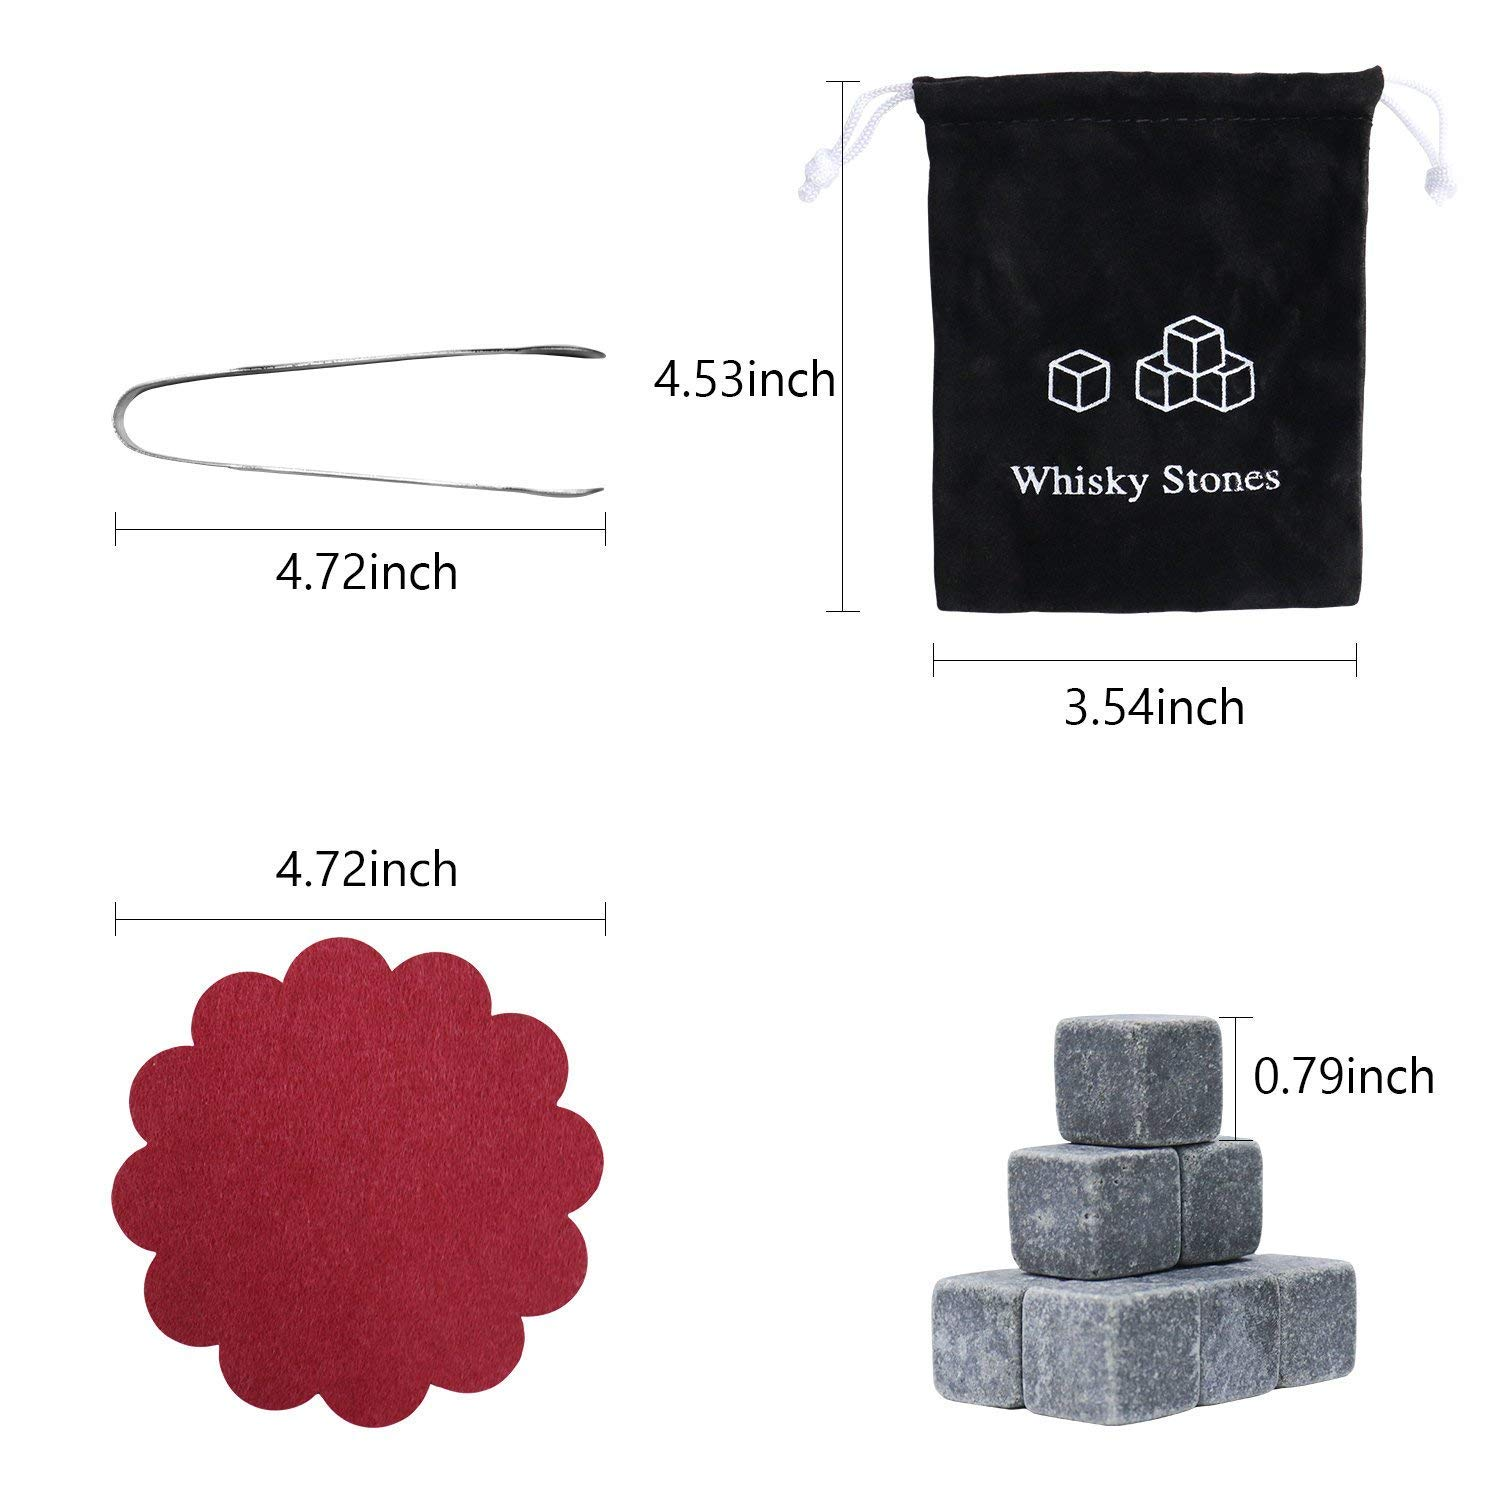 PEMOTech 9PCS Ice Stones with Velvet Pouch Stainless Steel Tongs and 2 CoastersGranite Drinking Rocks for Keeping Your Whiskey Whiskey Stones Wine and other Beverages Cool for Longer and No Dilution